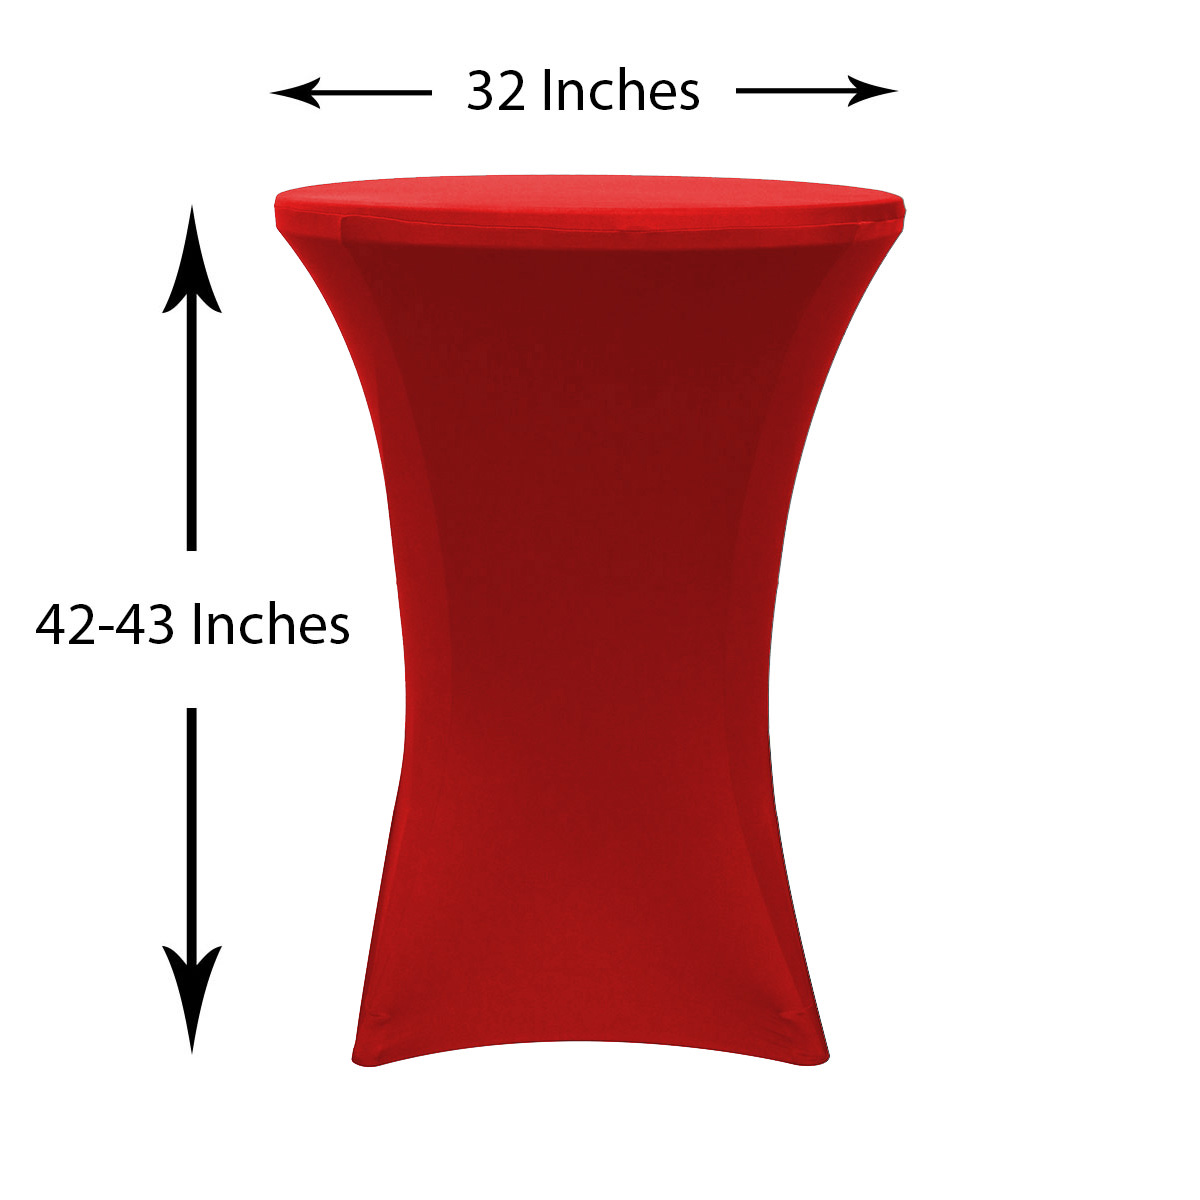 32-inch-highboy-cocktail-spandex-table-covers-red-dimensions.jpg